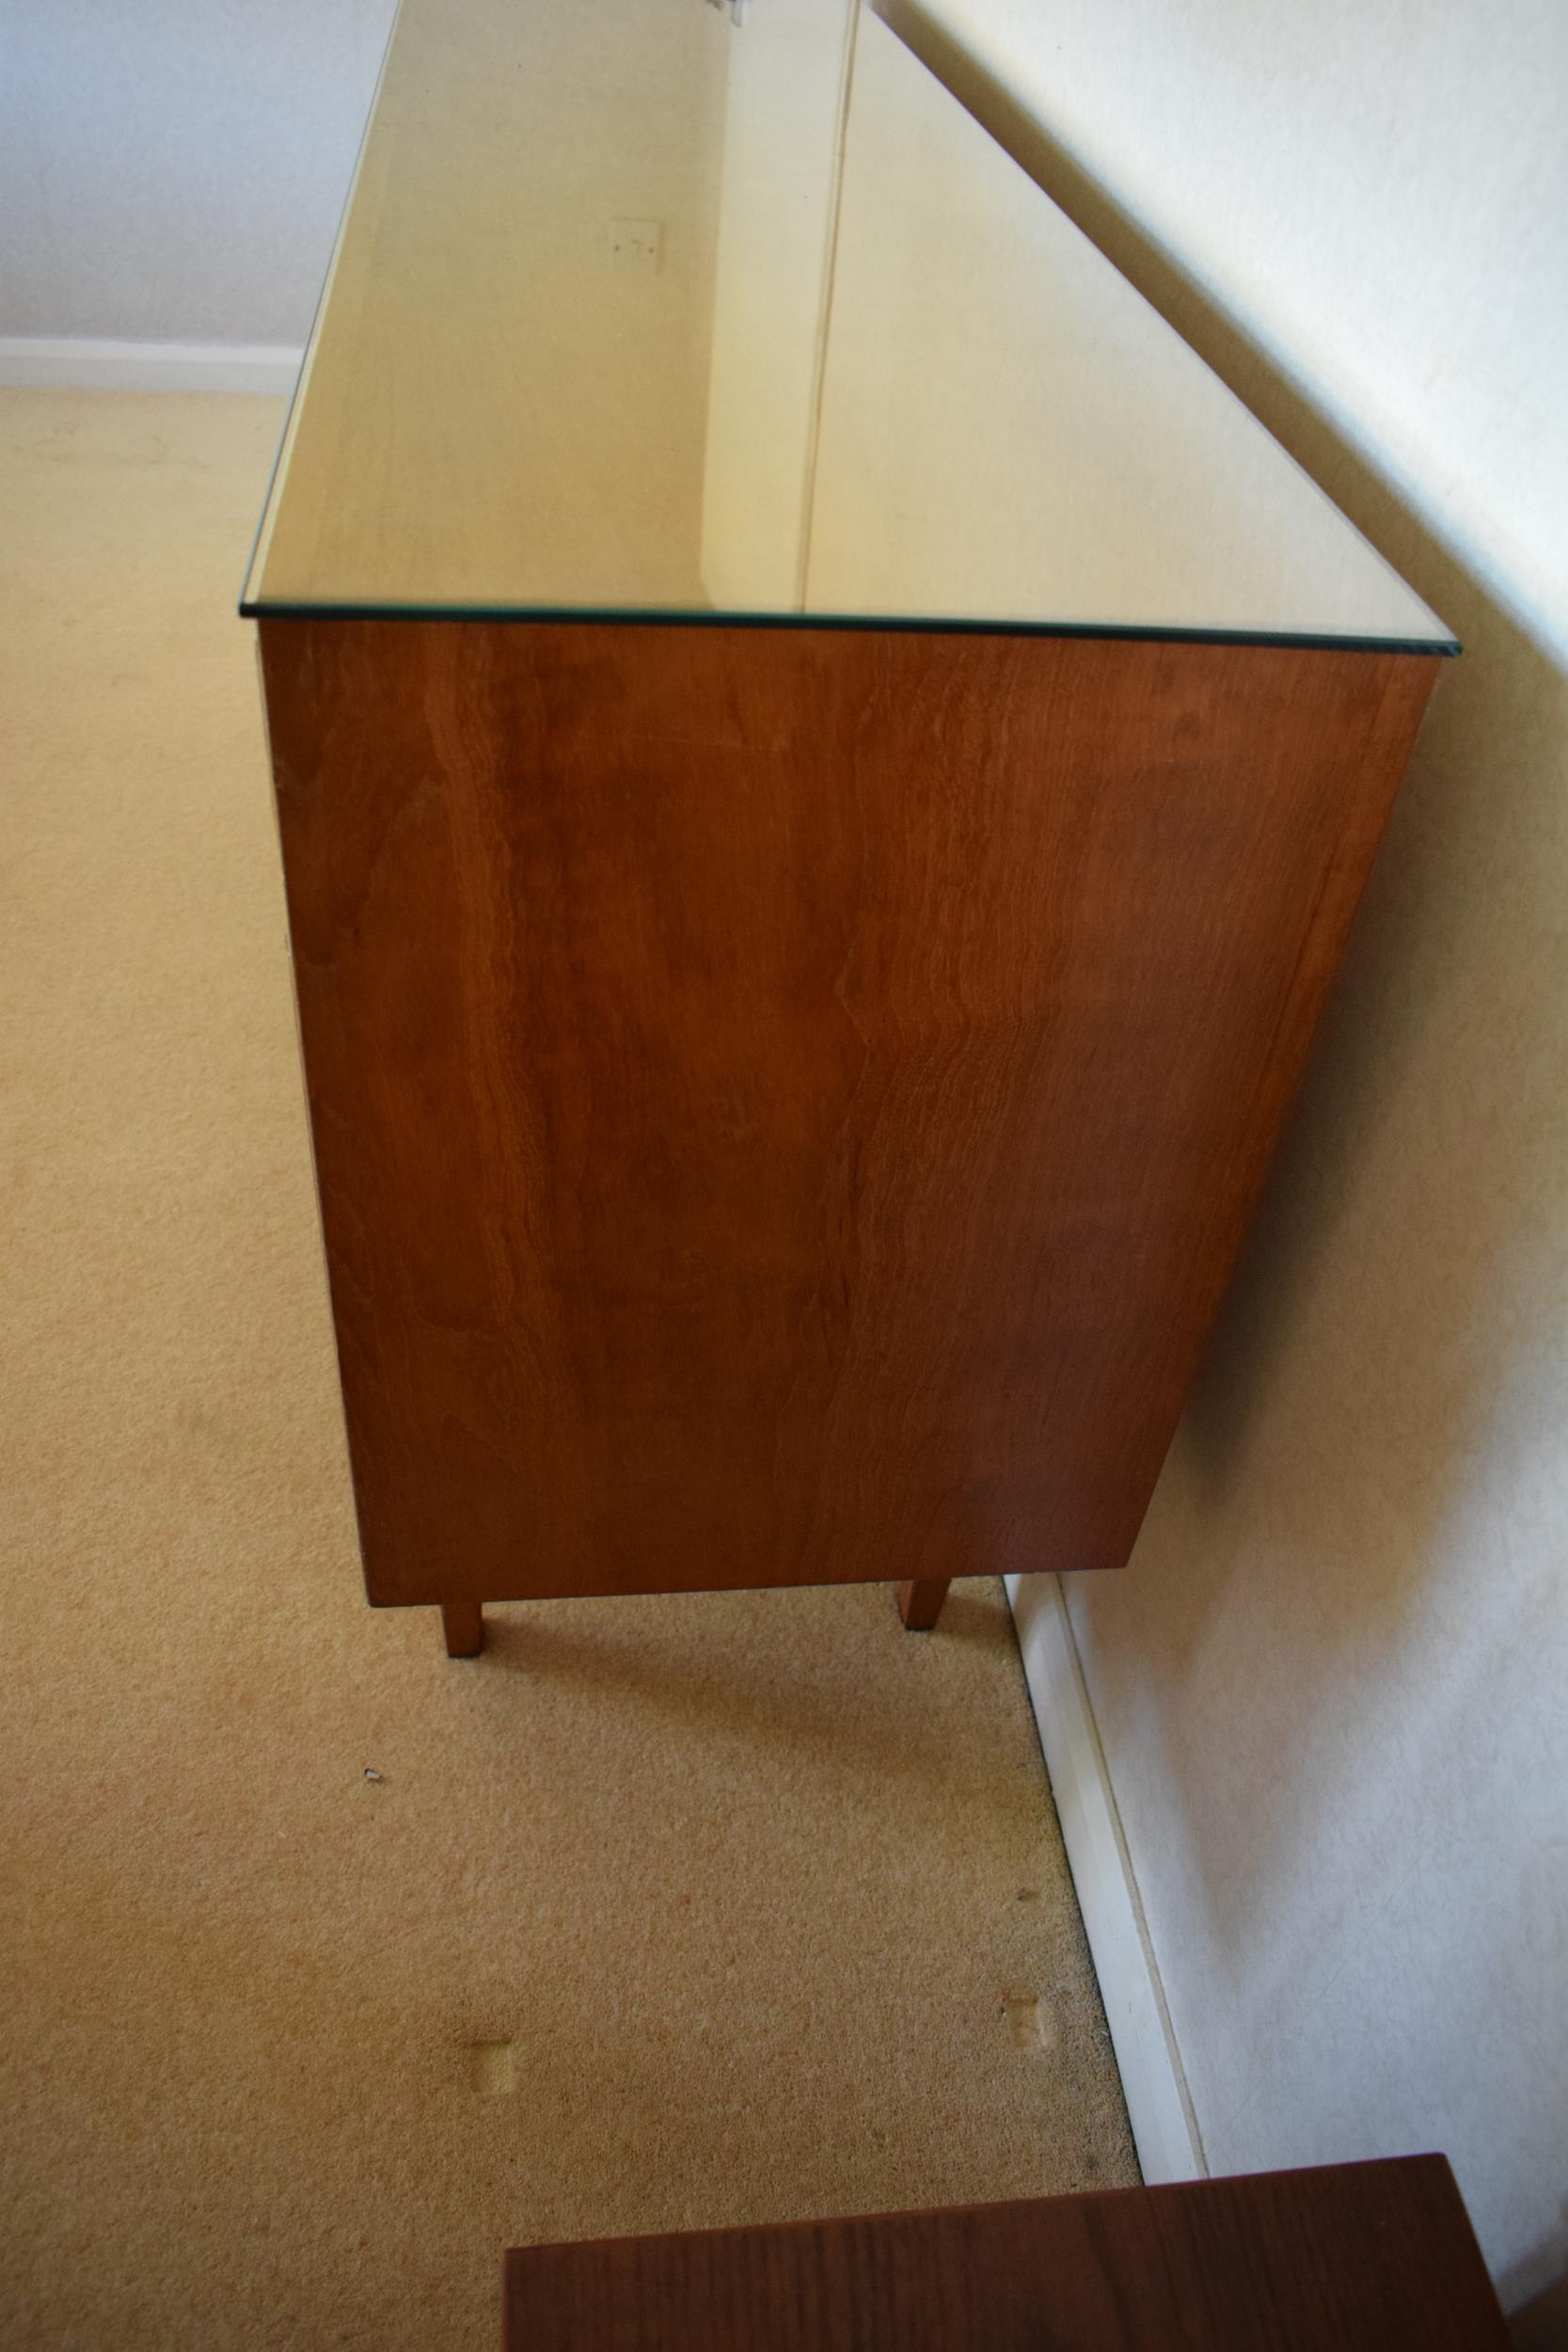 Gordon Rusell Limited four-door mid-century / retro sideboard on tapered legs with 4 drawers too. - Image 6 of 8